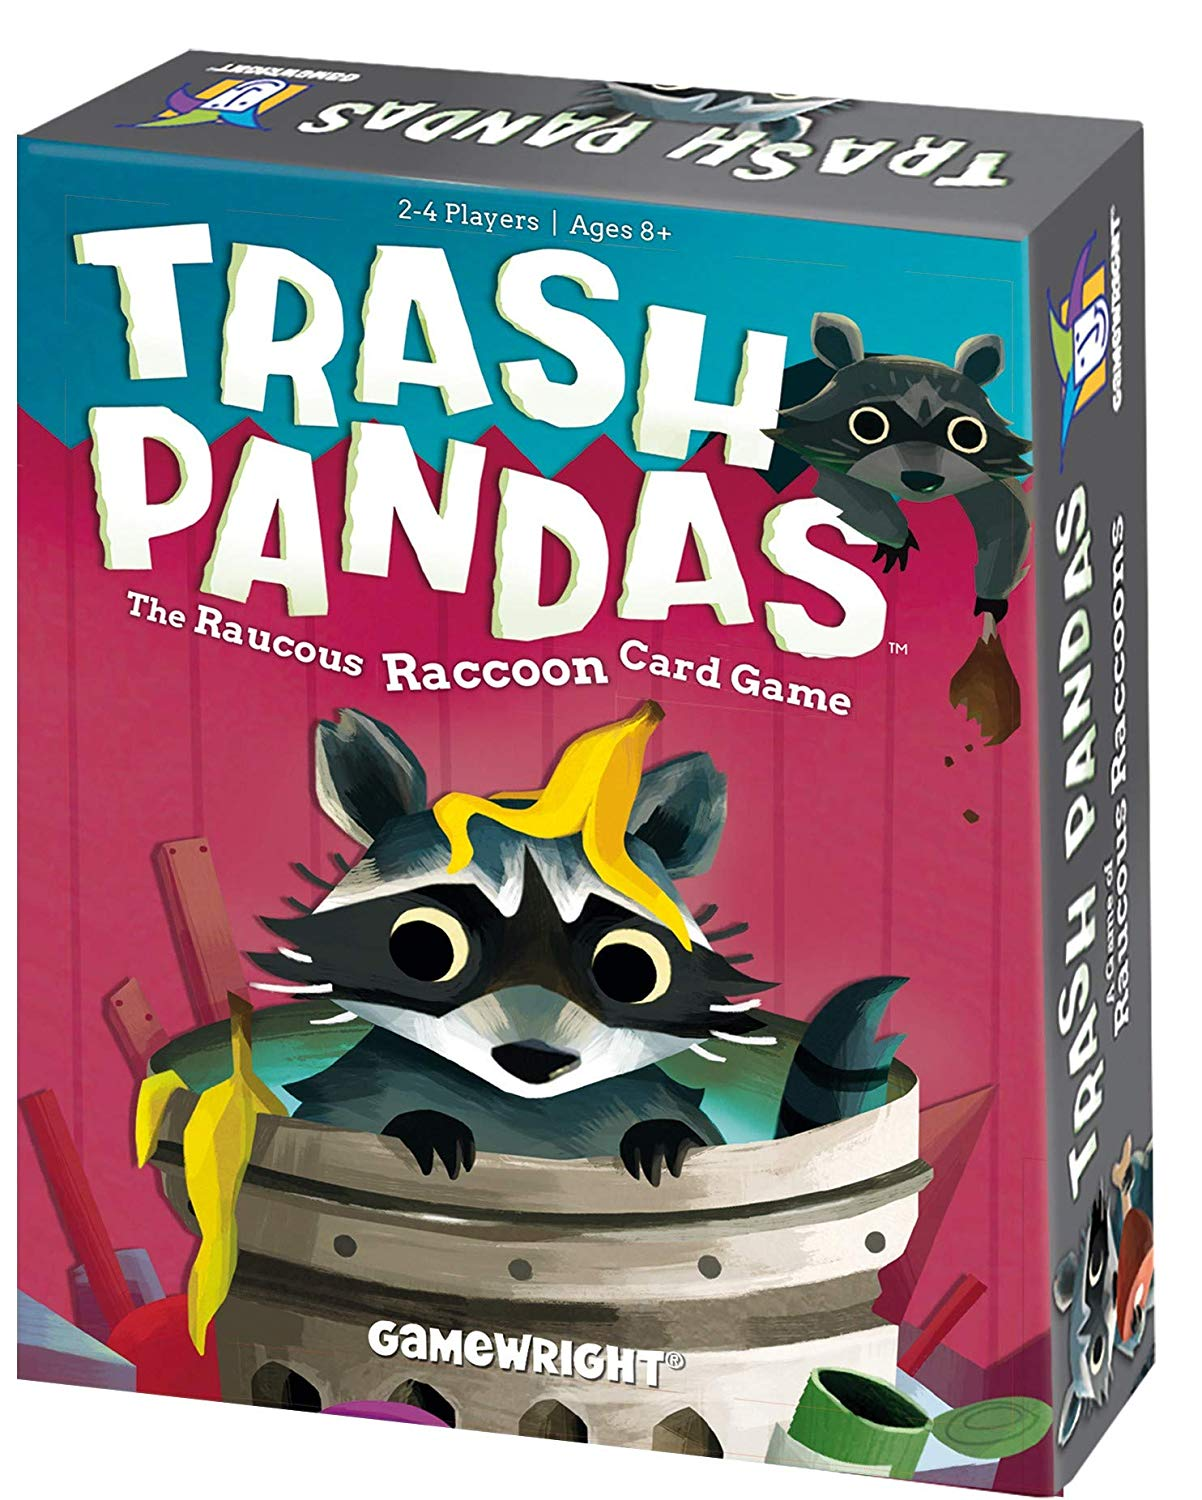 Who wouldn't want to be an adorable trash panda?